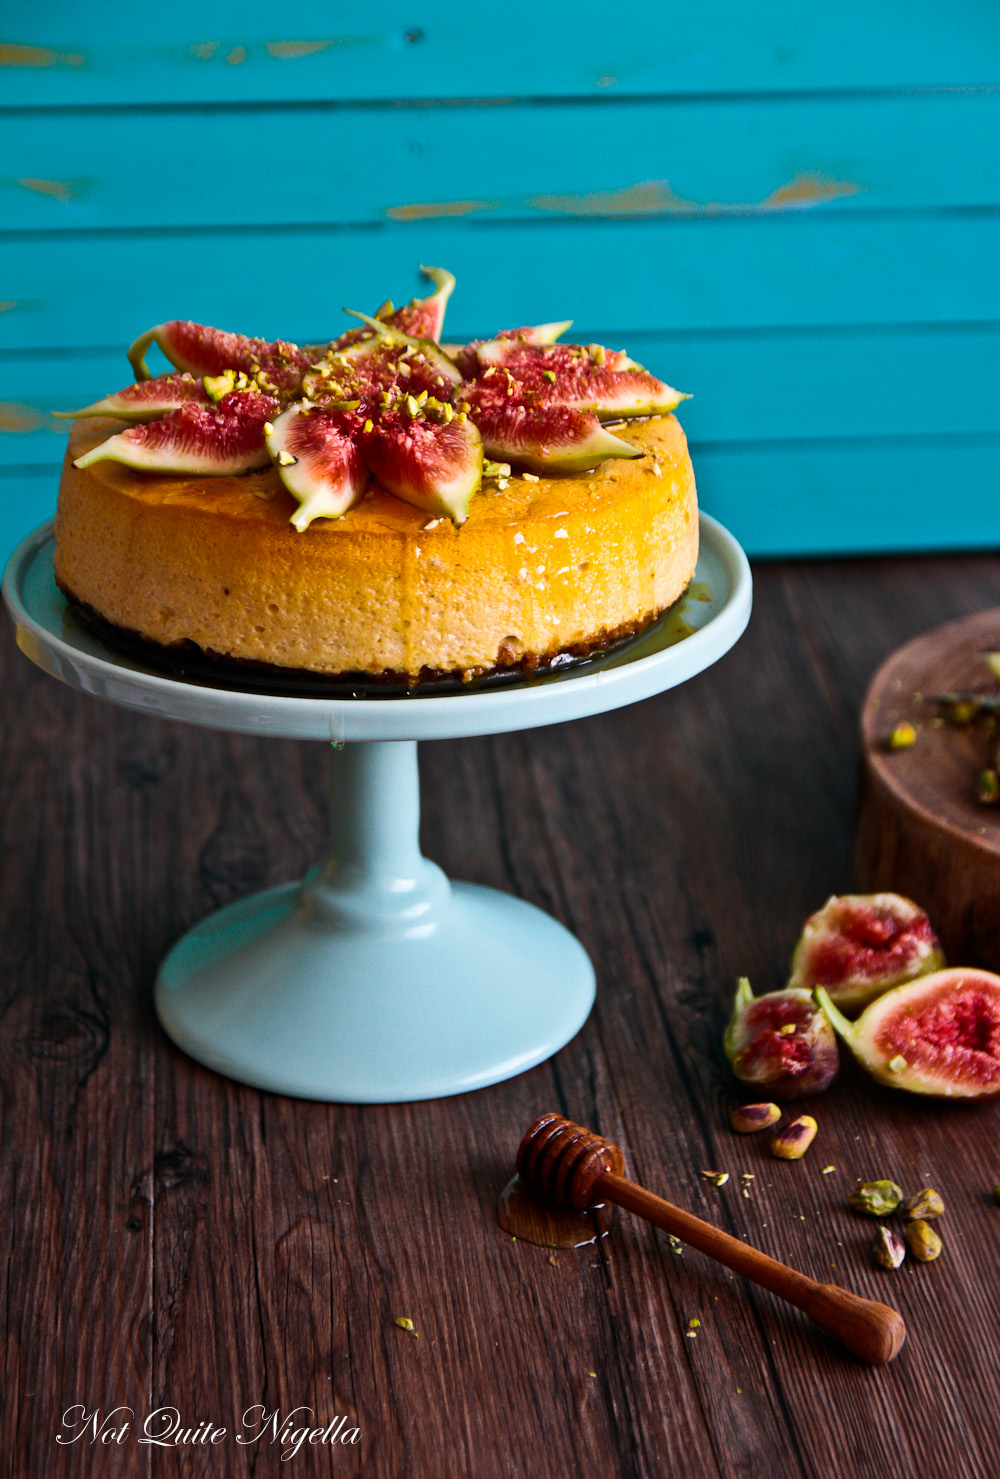 Light As A Feather Fig, Pistachio & Cinnamon Souffle Cheesecake!